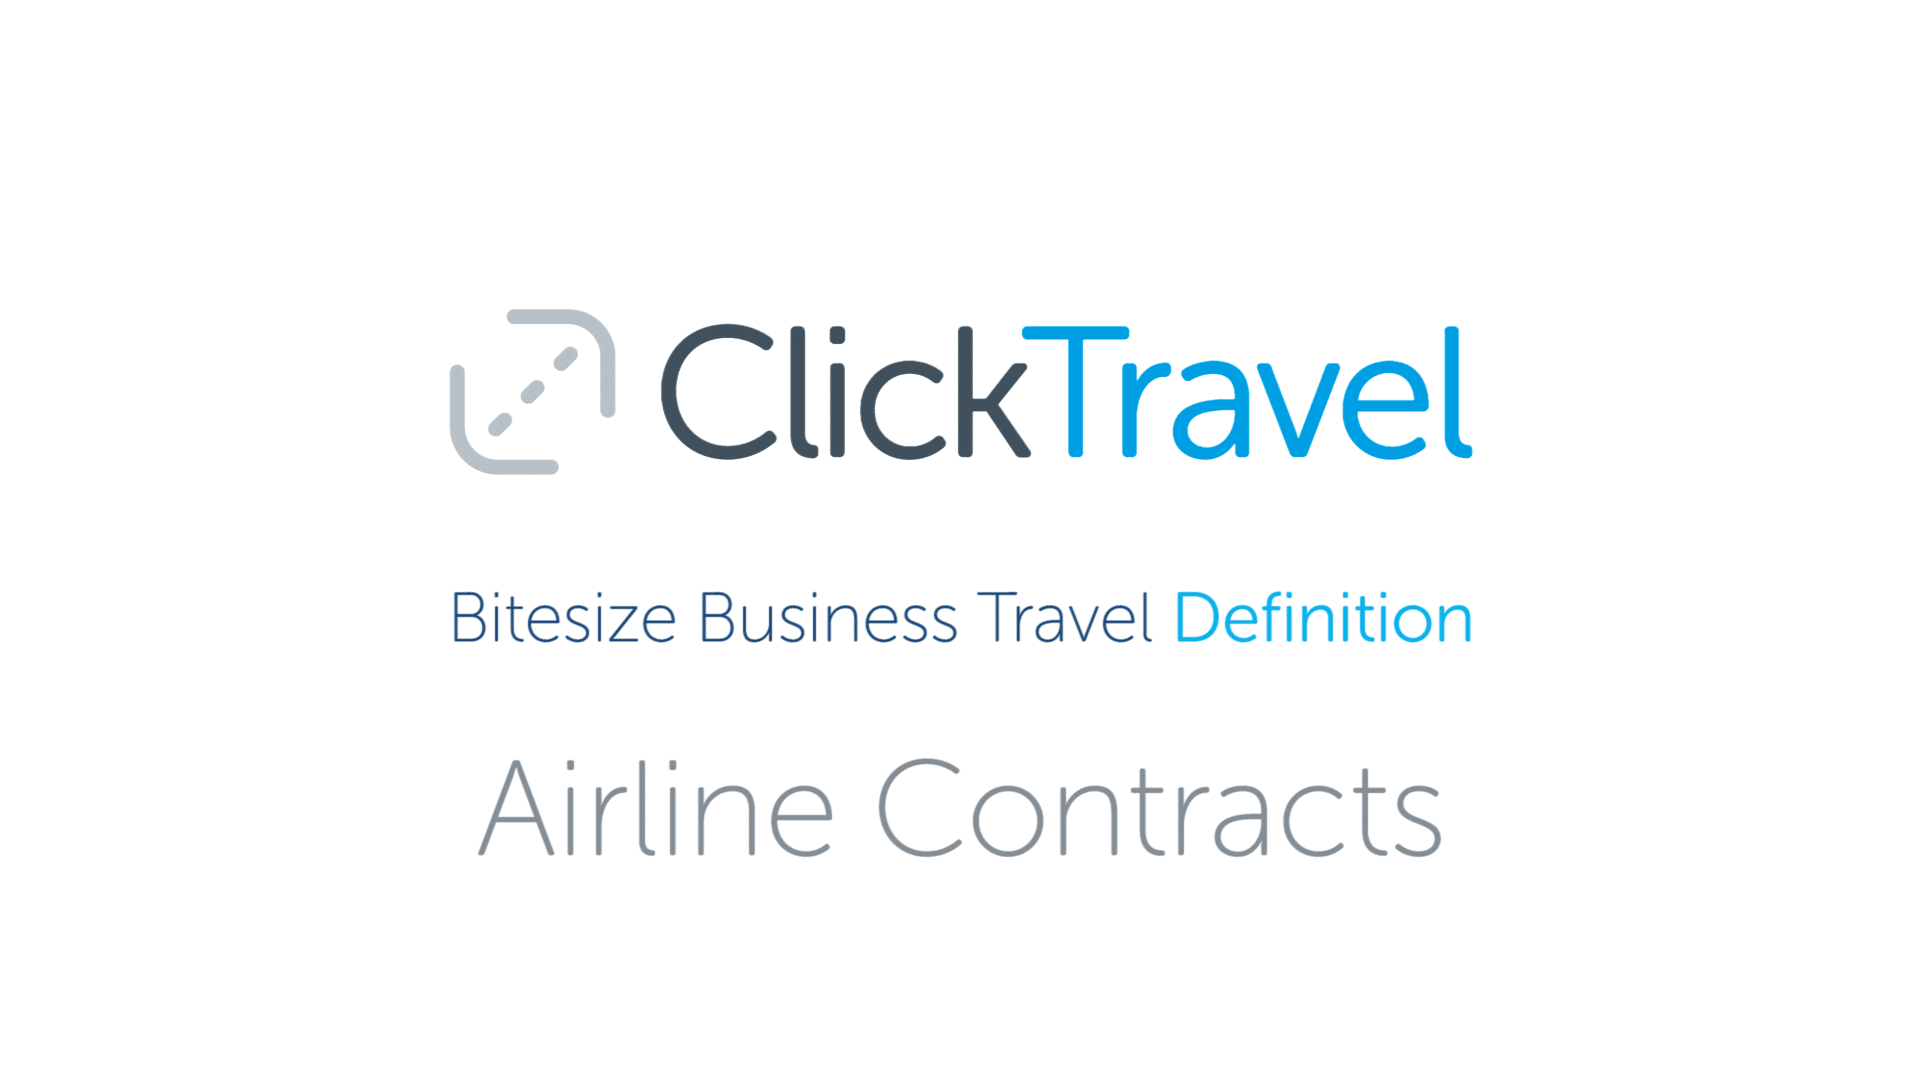 [VIDEO] Bitesize Business Travel Definition: Airline Contracts